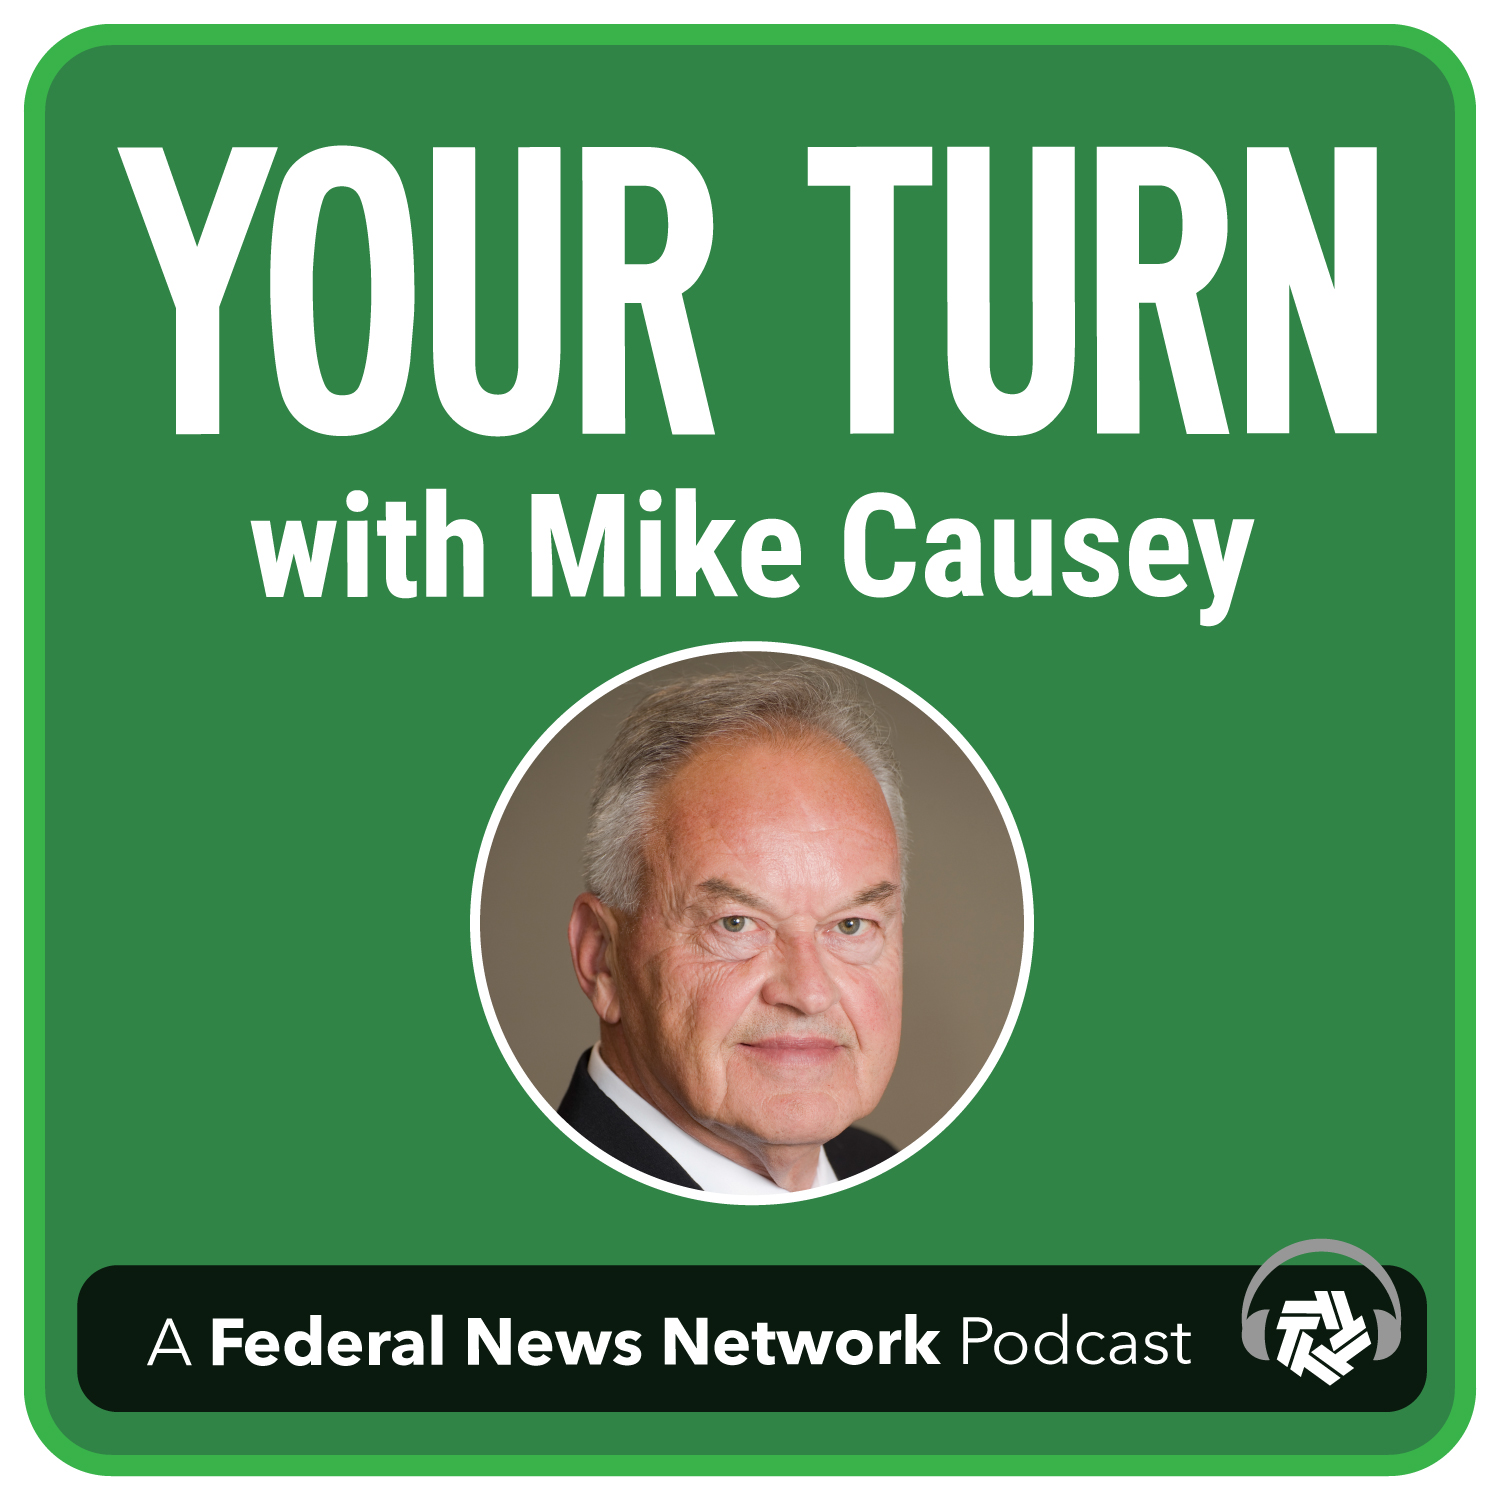 Podcastone Your Turn With Mike Causey An Electrical Shaver Point How To Fit A Shaving Socket Diy Doctor